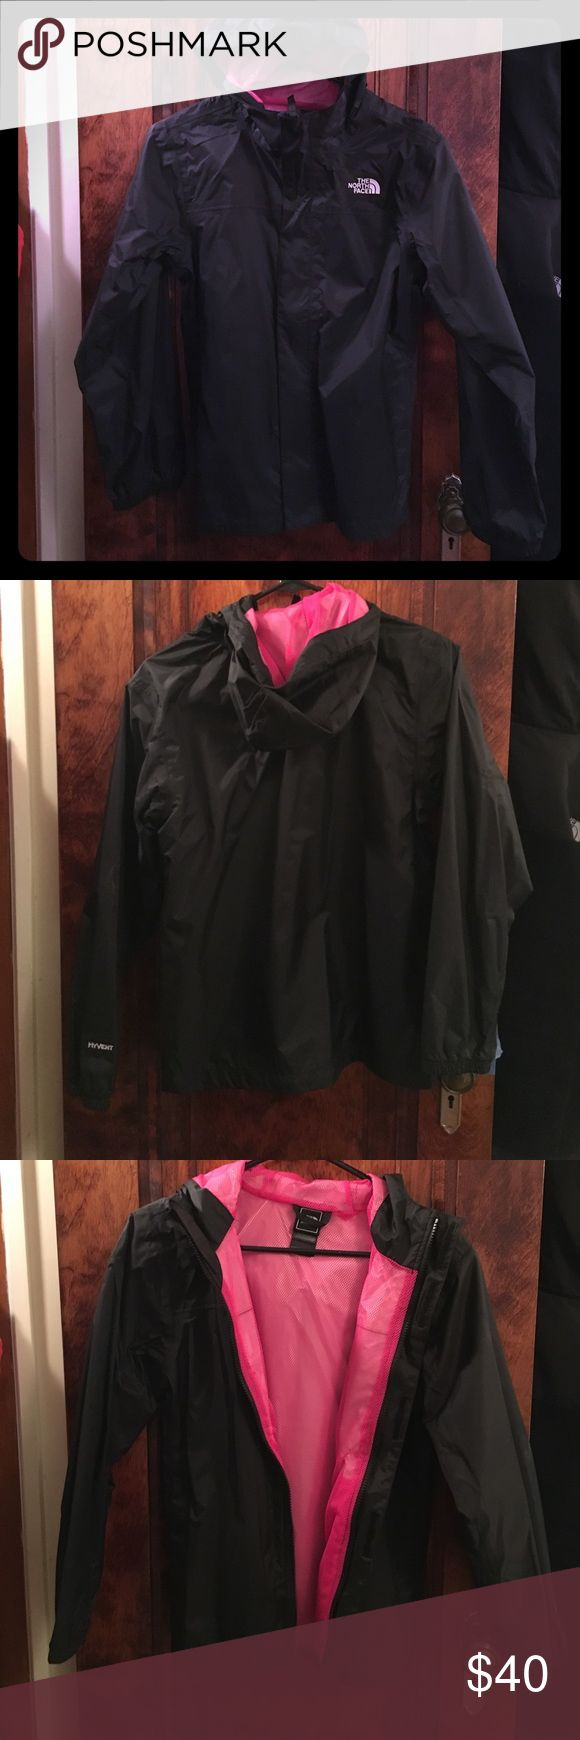 Girls north face rain coat Super cute rain jacket. Girls large, but fits like a women's xs as long as your arms aren't super long. New without tags, never worn. The North Face Jackets & Coats